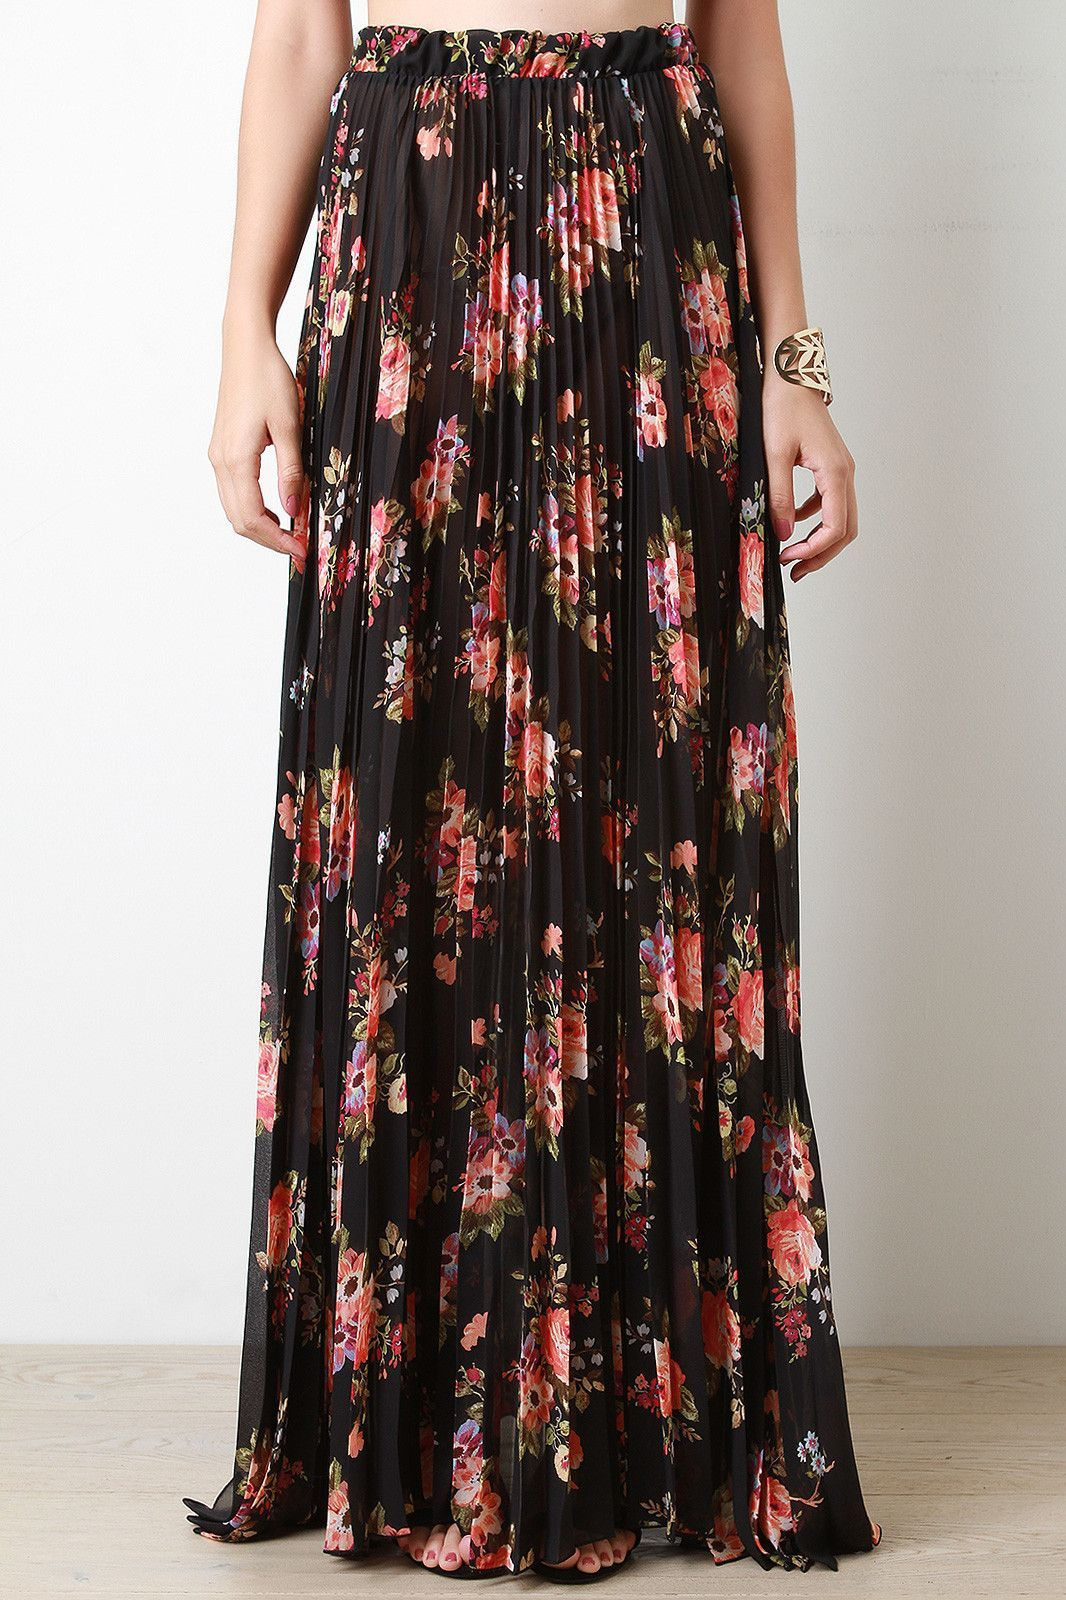 625b754dad This maxi skirt features semi-sheer chiffon, accordion pleats, floral  pattern, and elasticized waist. Accessories sold separately. Made in USA.